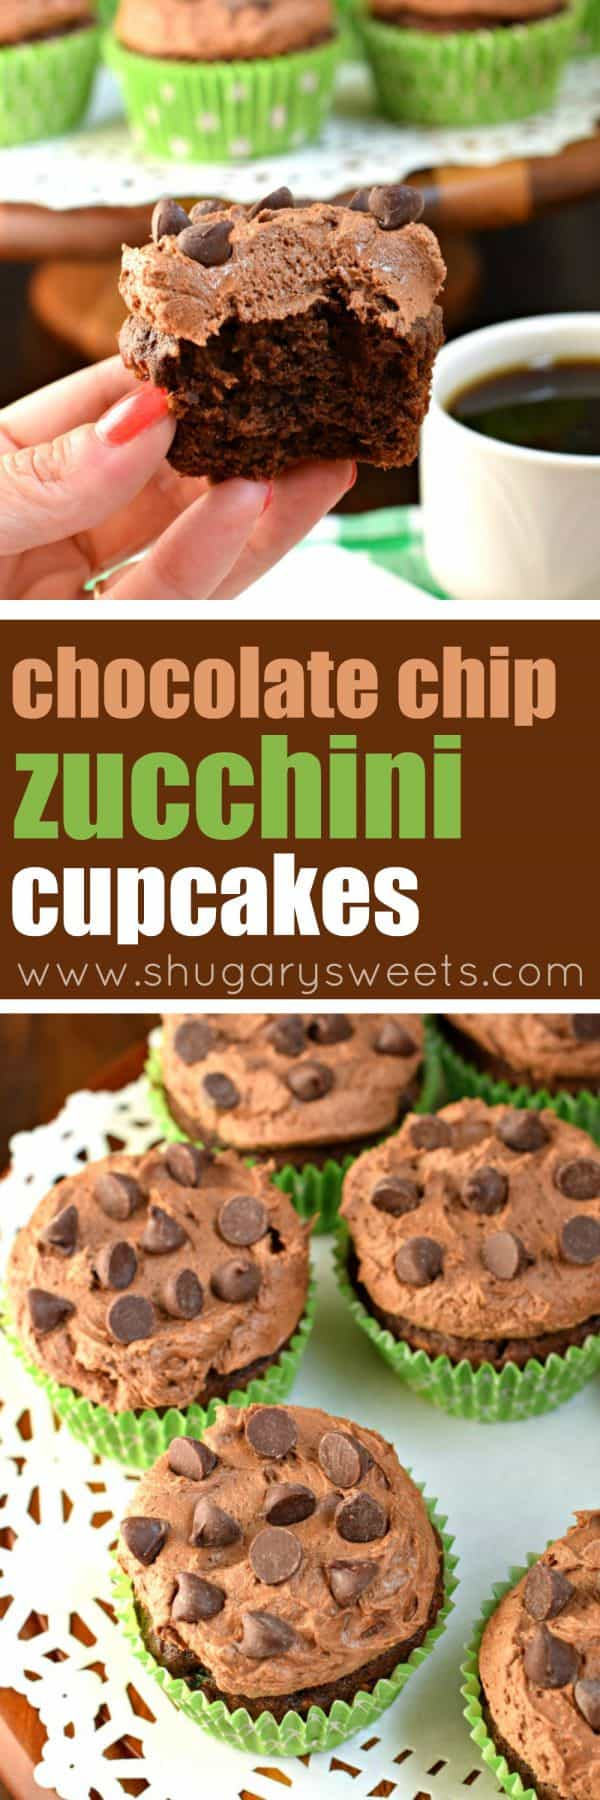 You'll love these moist and fudgy, Chocolate Chip Zucchini Cupcakes! Hard to believe there's a vegetable inside these sweet cupcakes!